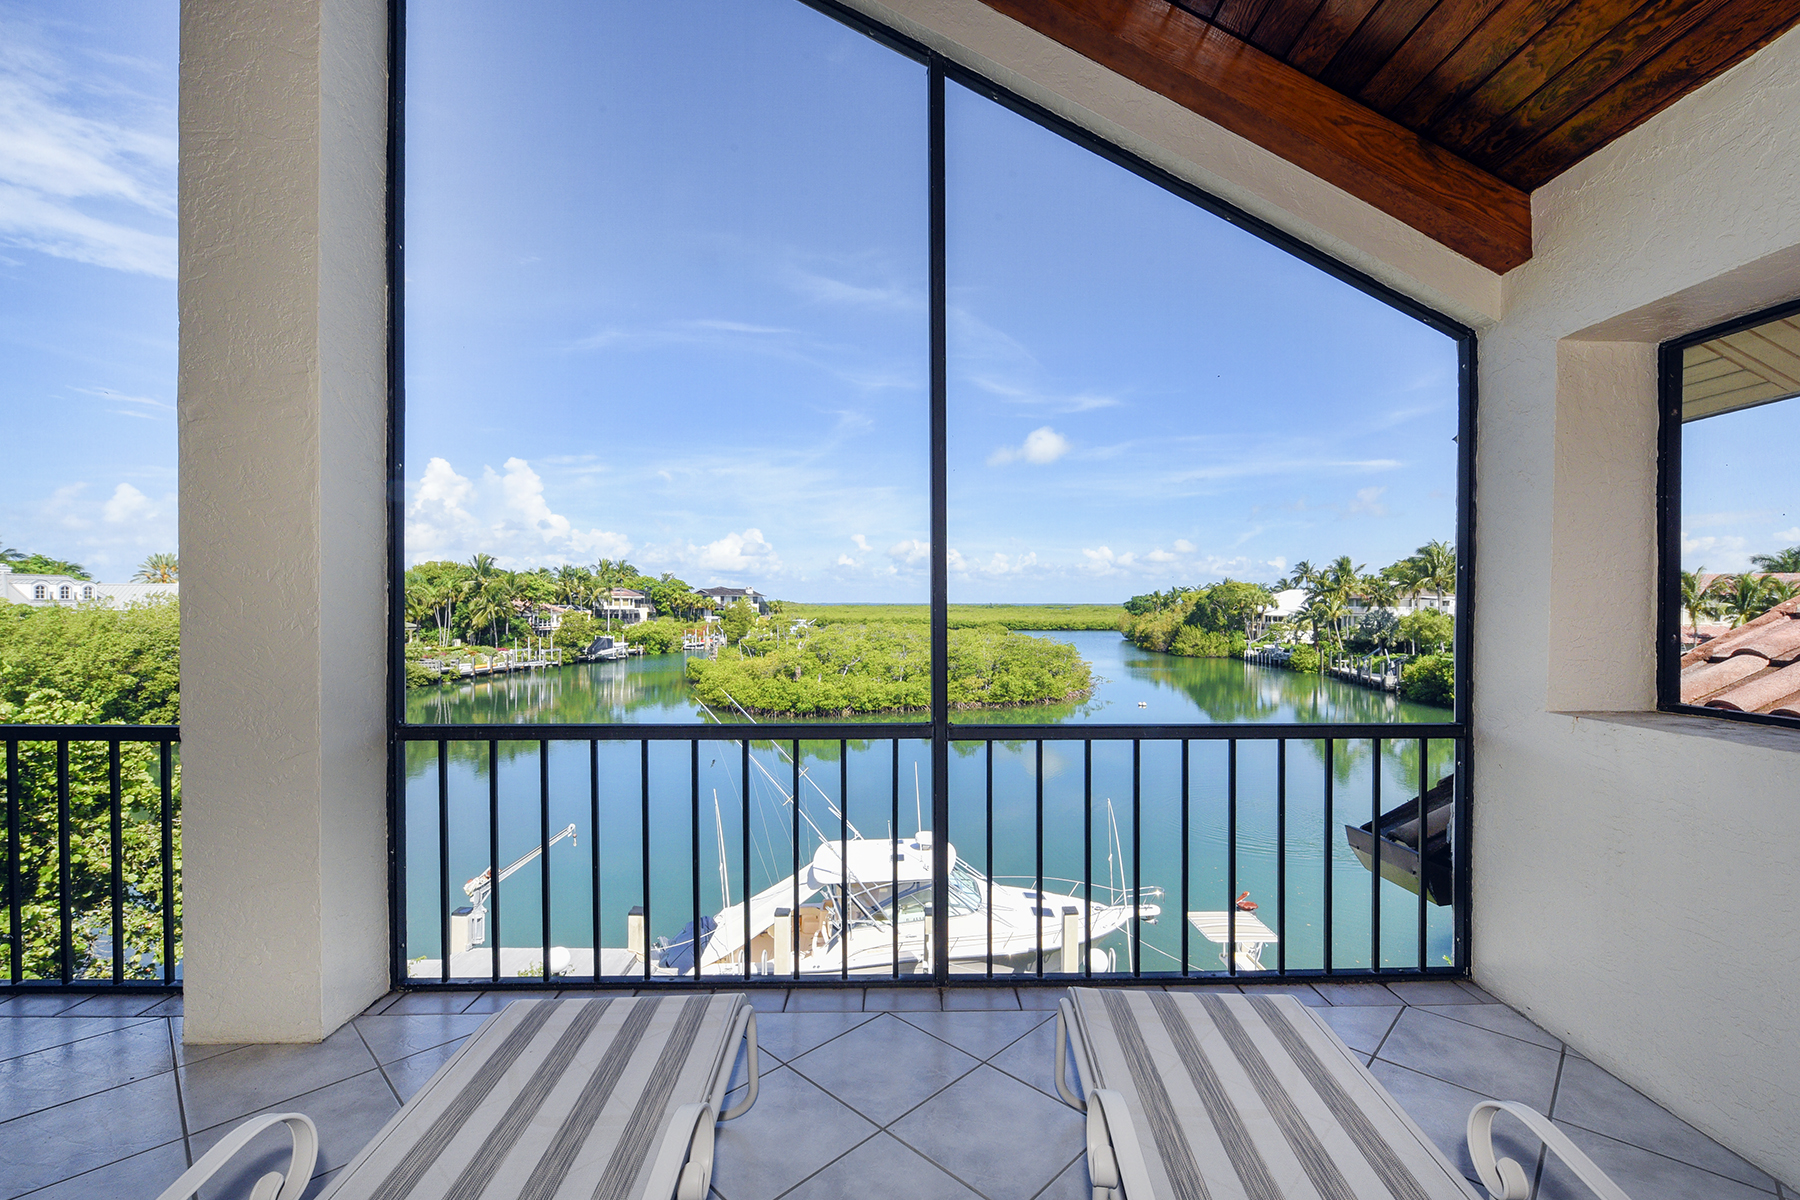 Maison unifamiliale pour l Vente à Waterfront Living at Ocean Reef 21 Sunrise Cay Drive Key Largo, Florida, 33037 États-Unis